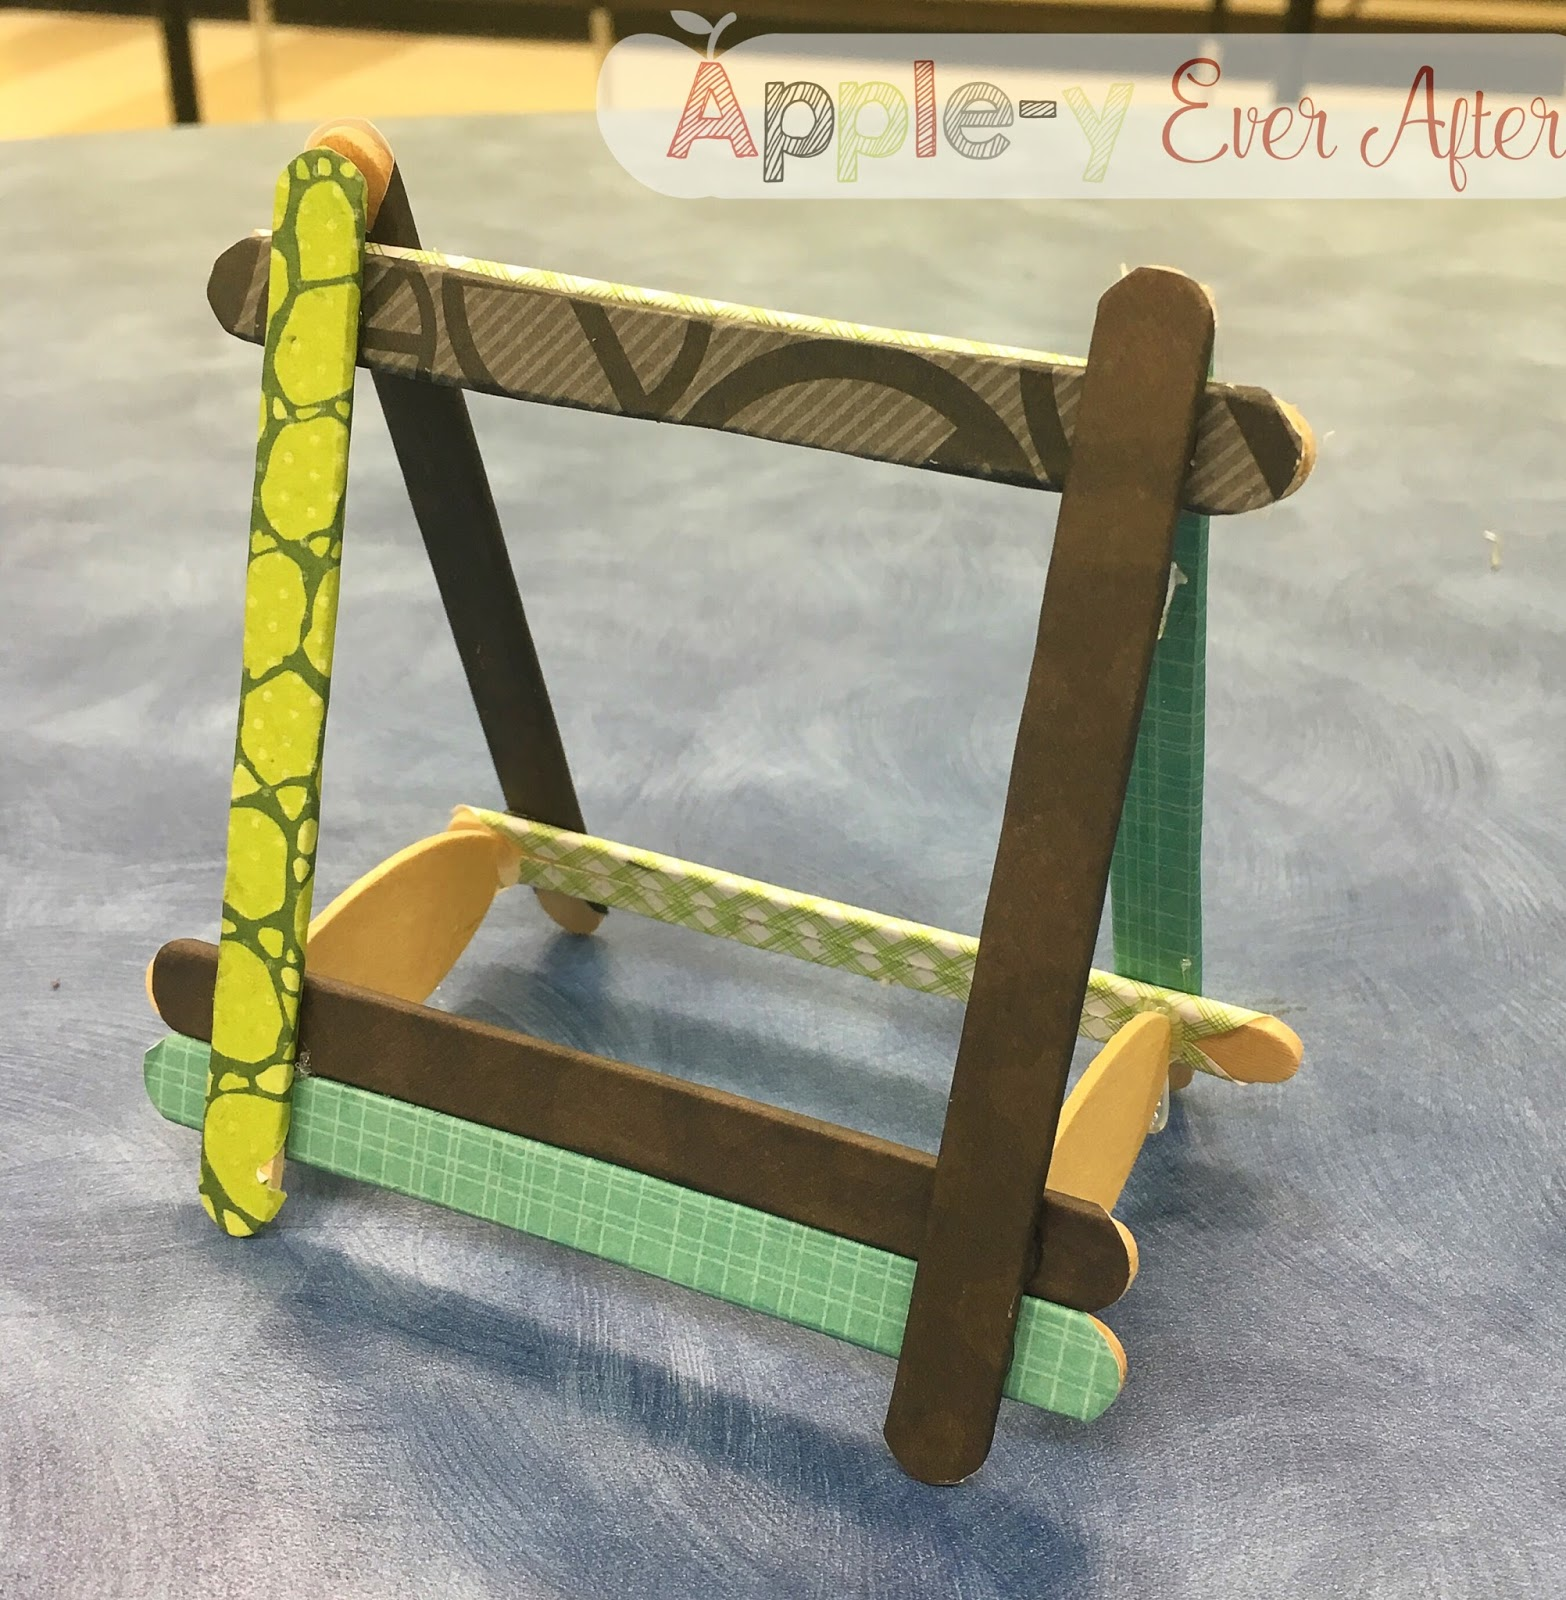 More Father\'s Day Fun! A Popsicle Stick Frame! - Apple-y Ever After!